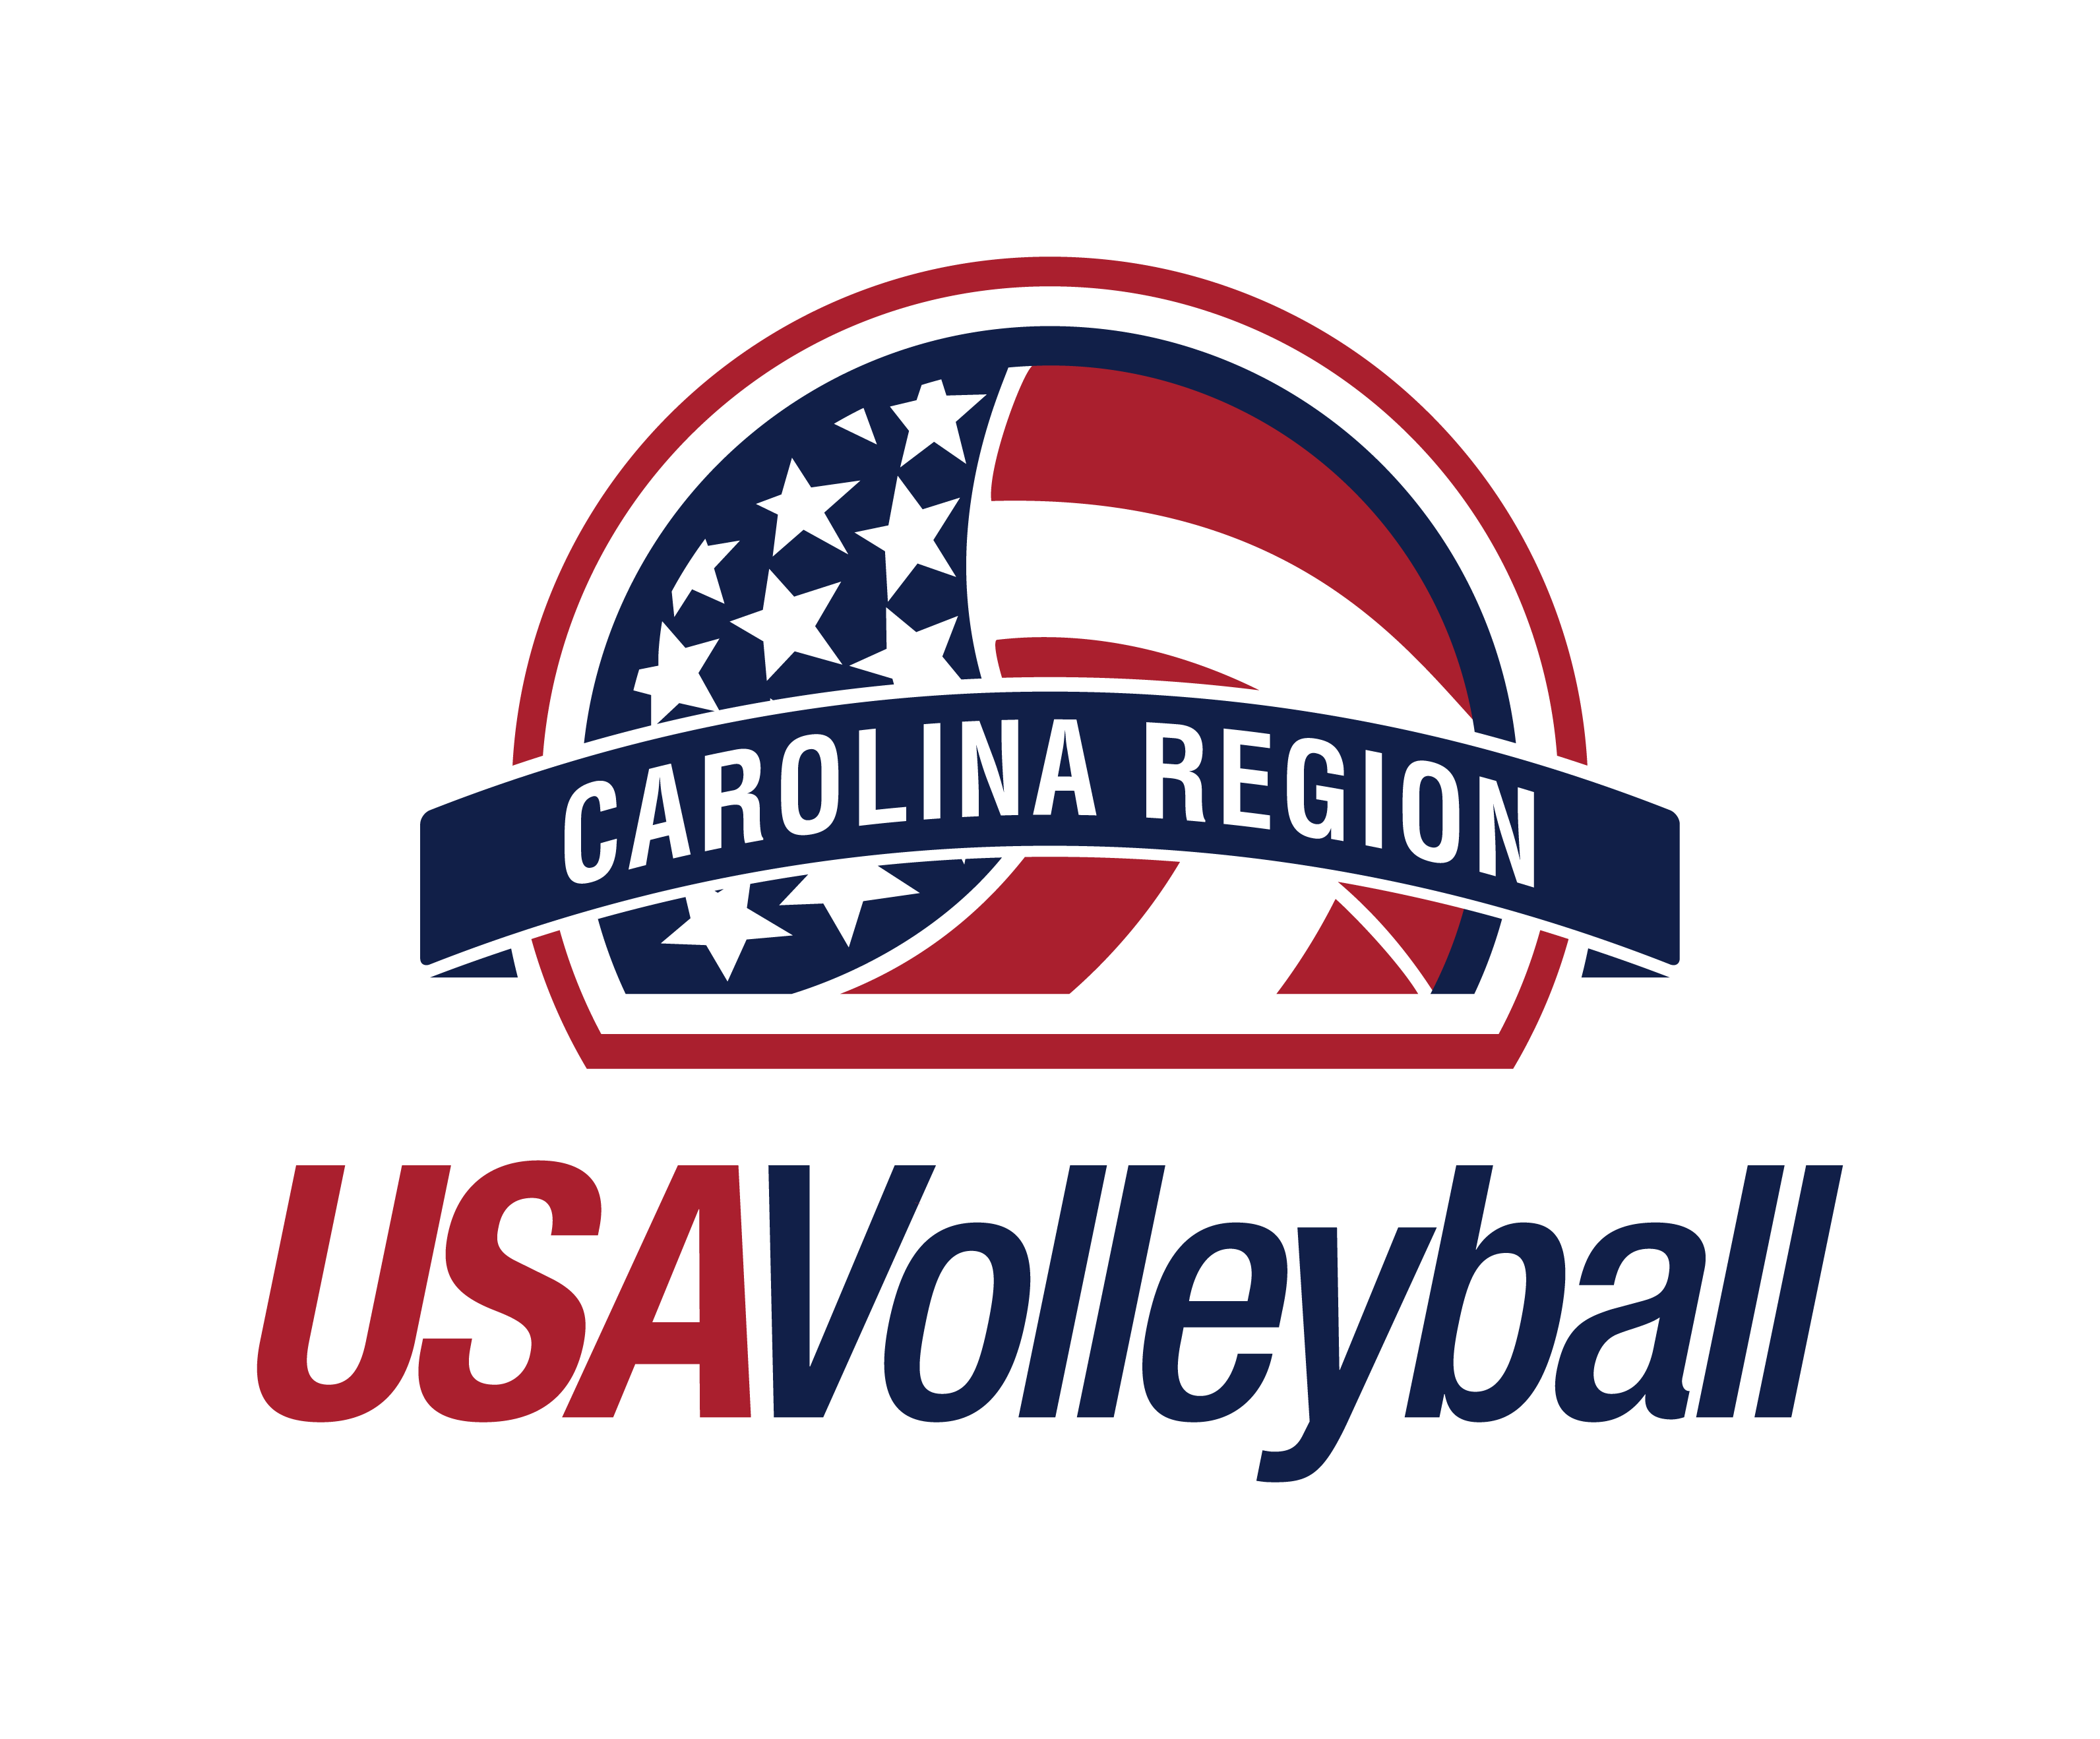 Carolina Region logo